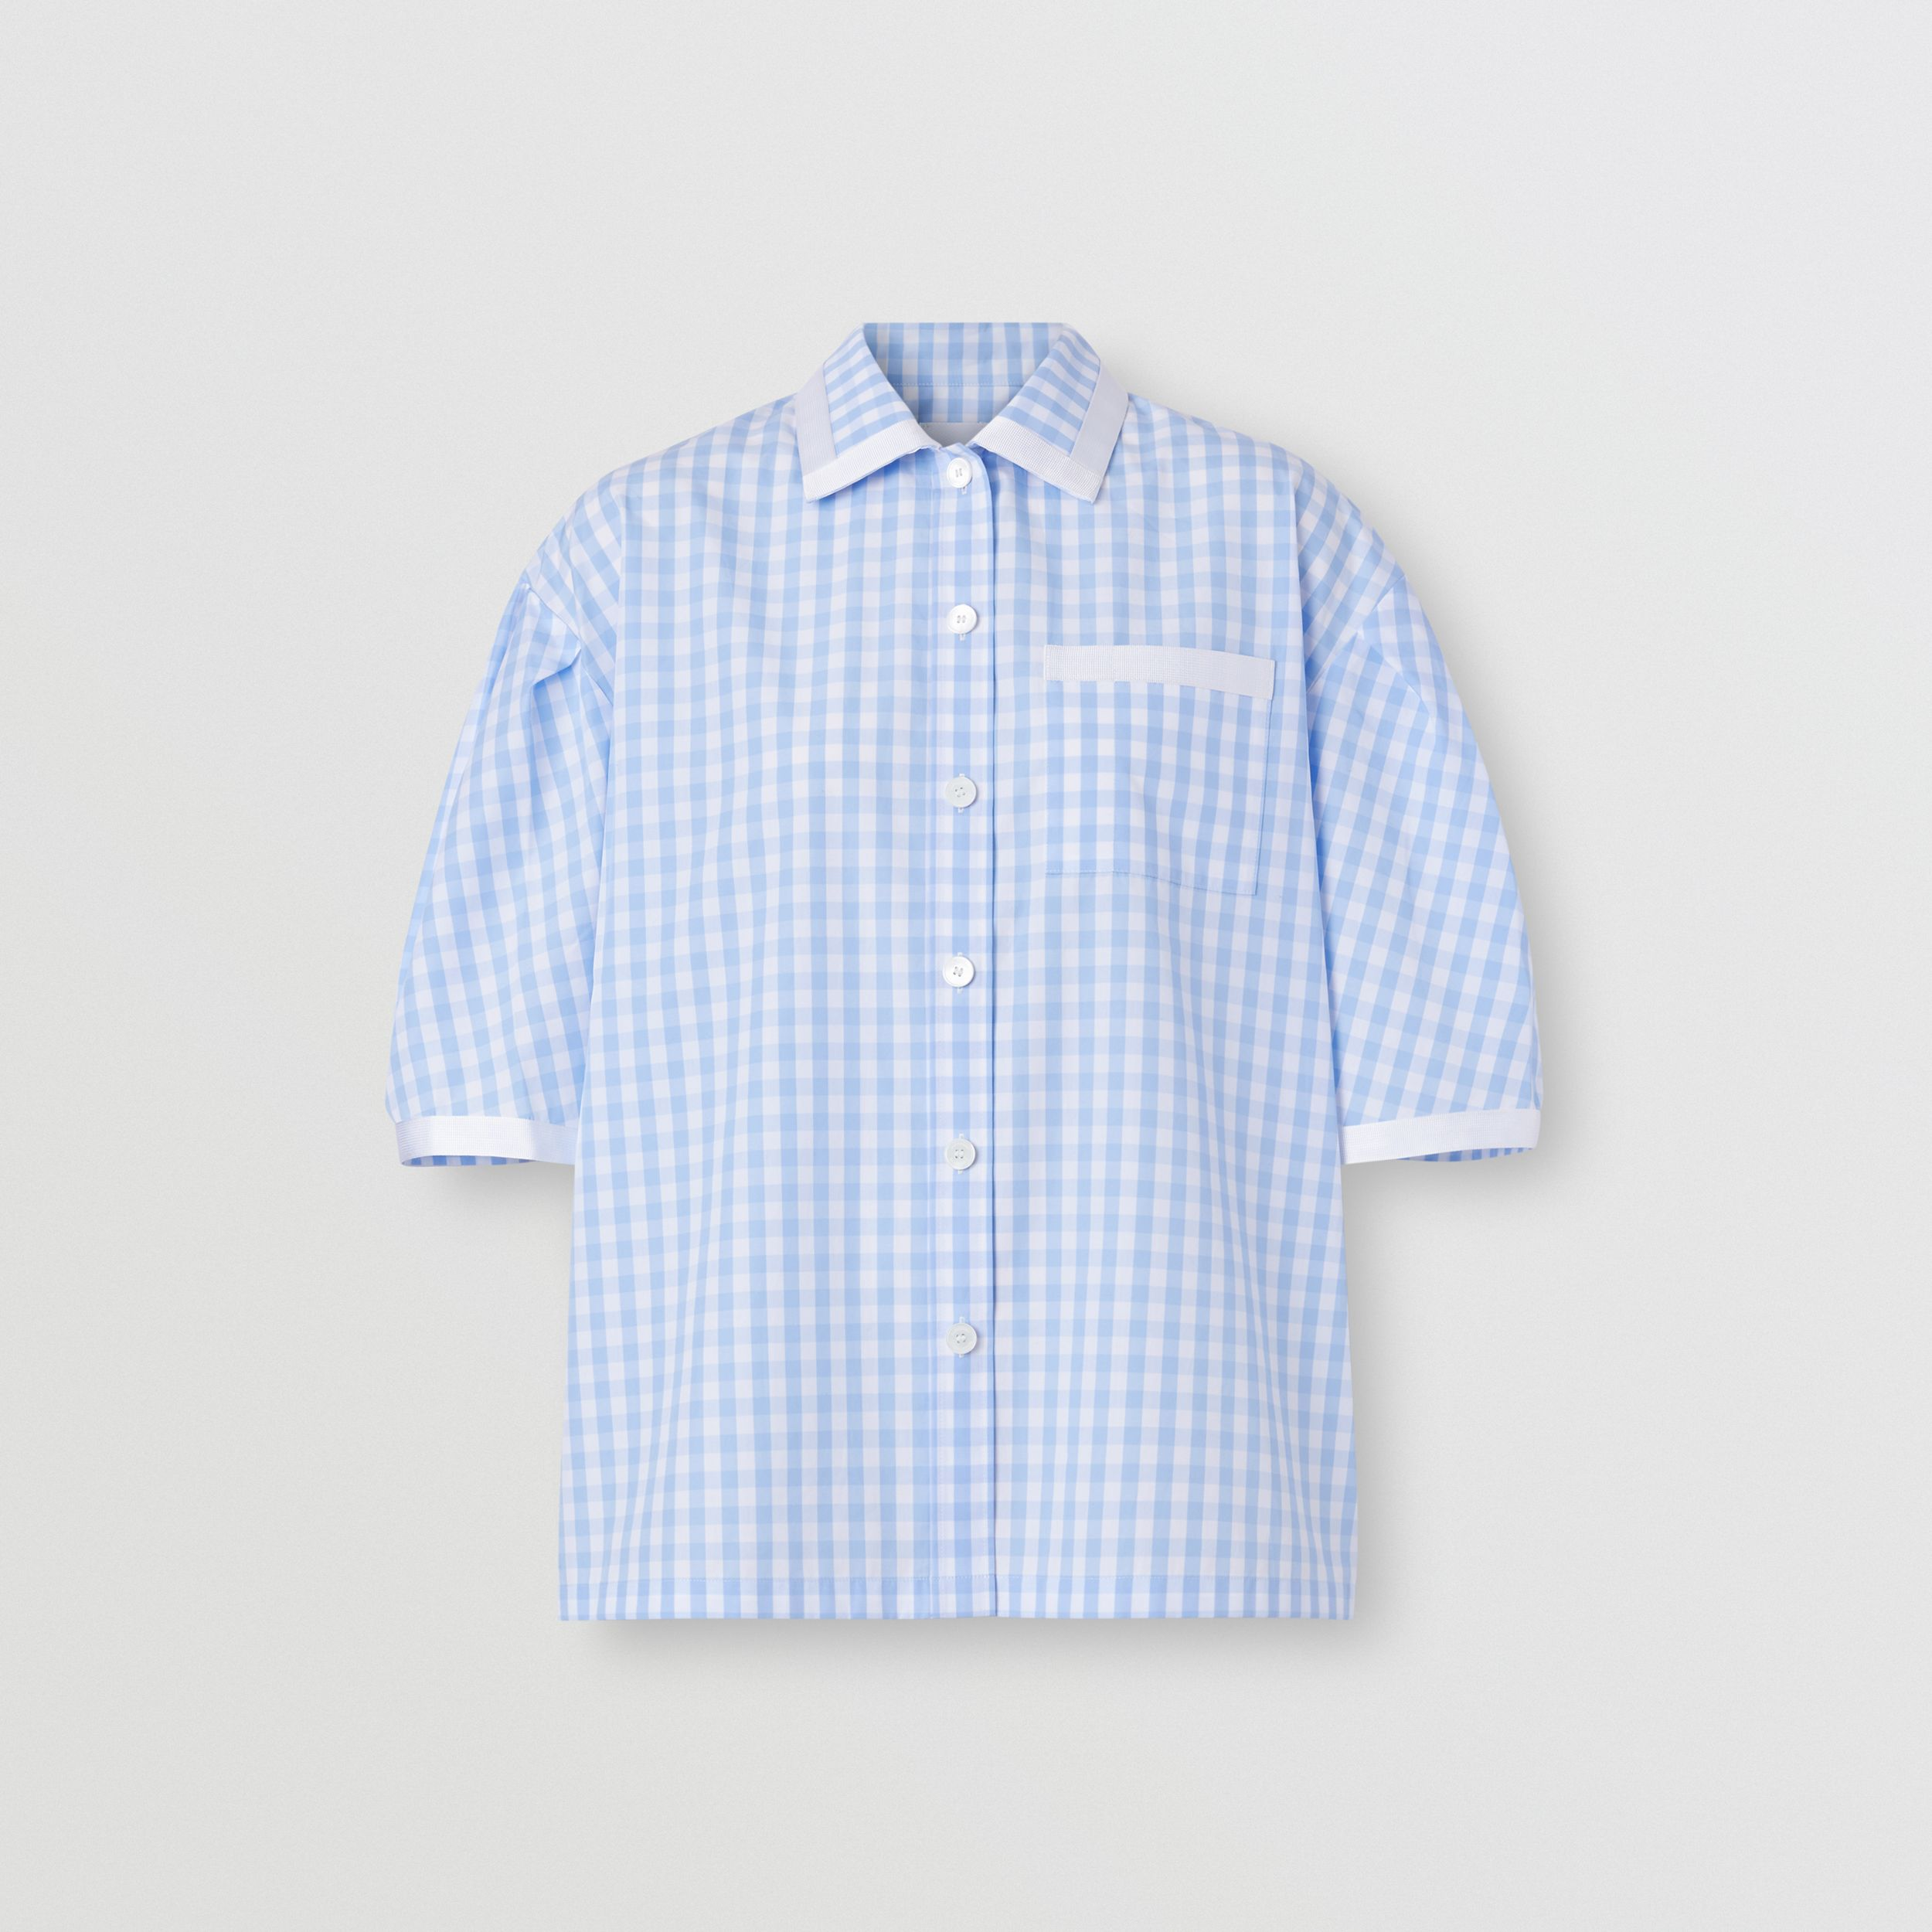 Puff-sleeve Gingham Cotton Oversized Shirt in Pale Blue - Women | Burberry - 4